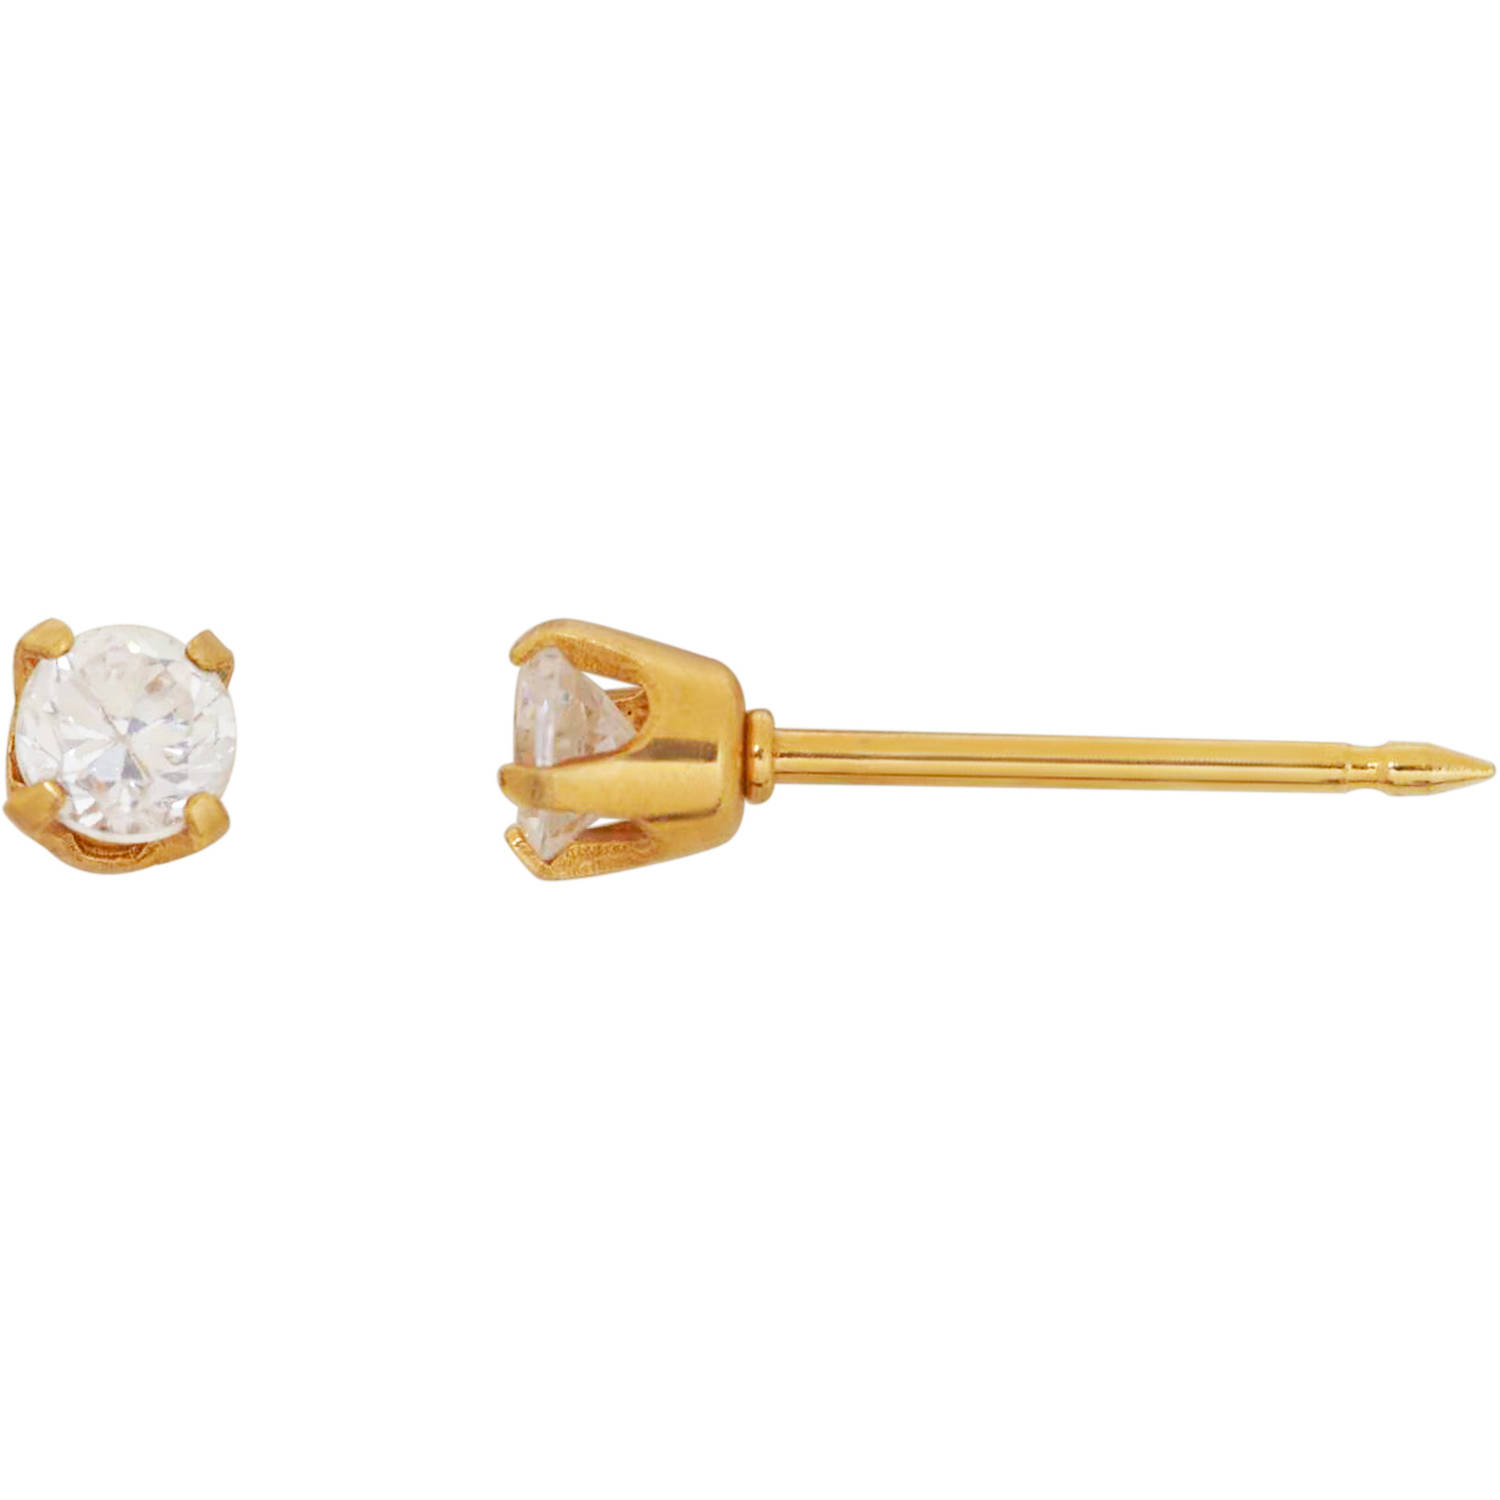 Home Ear Piercing Kit with 14kt Yellow Gold 3mm CZ Earring